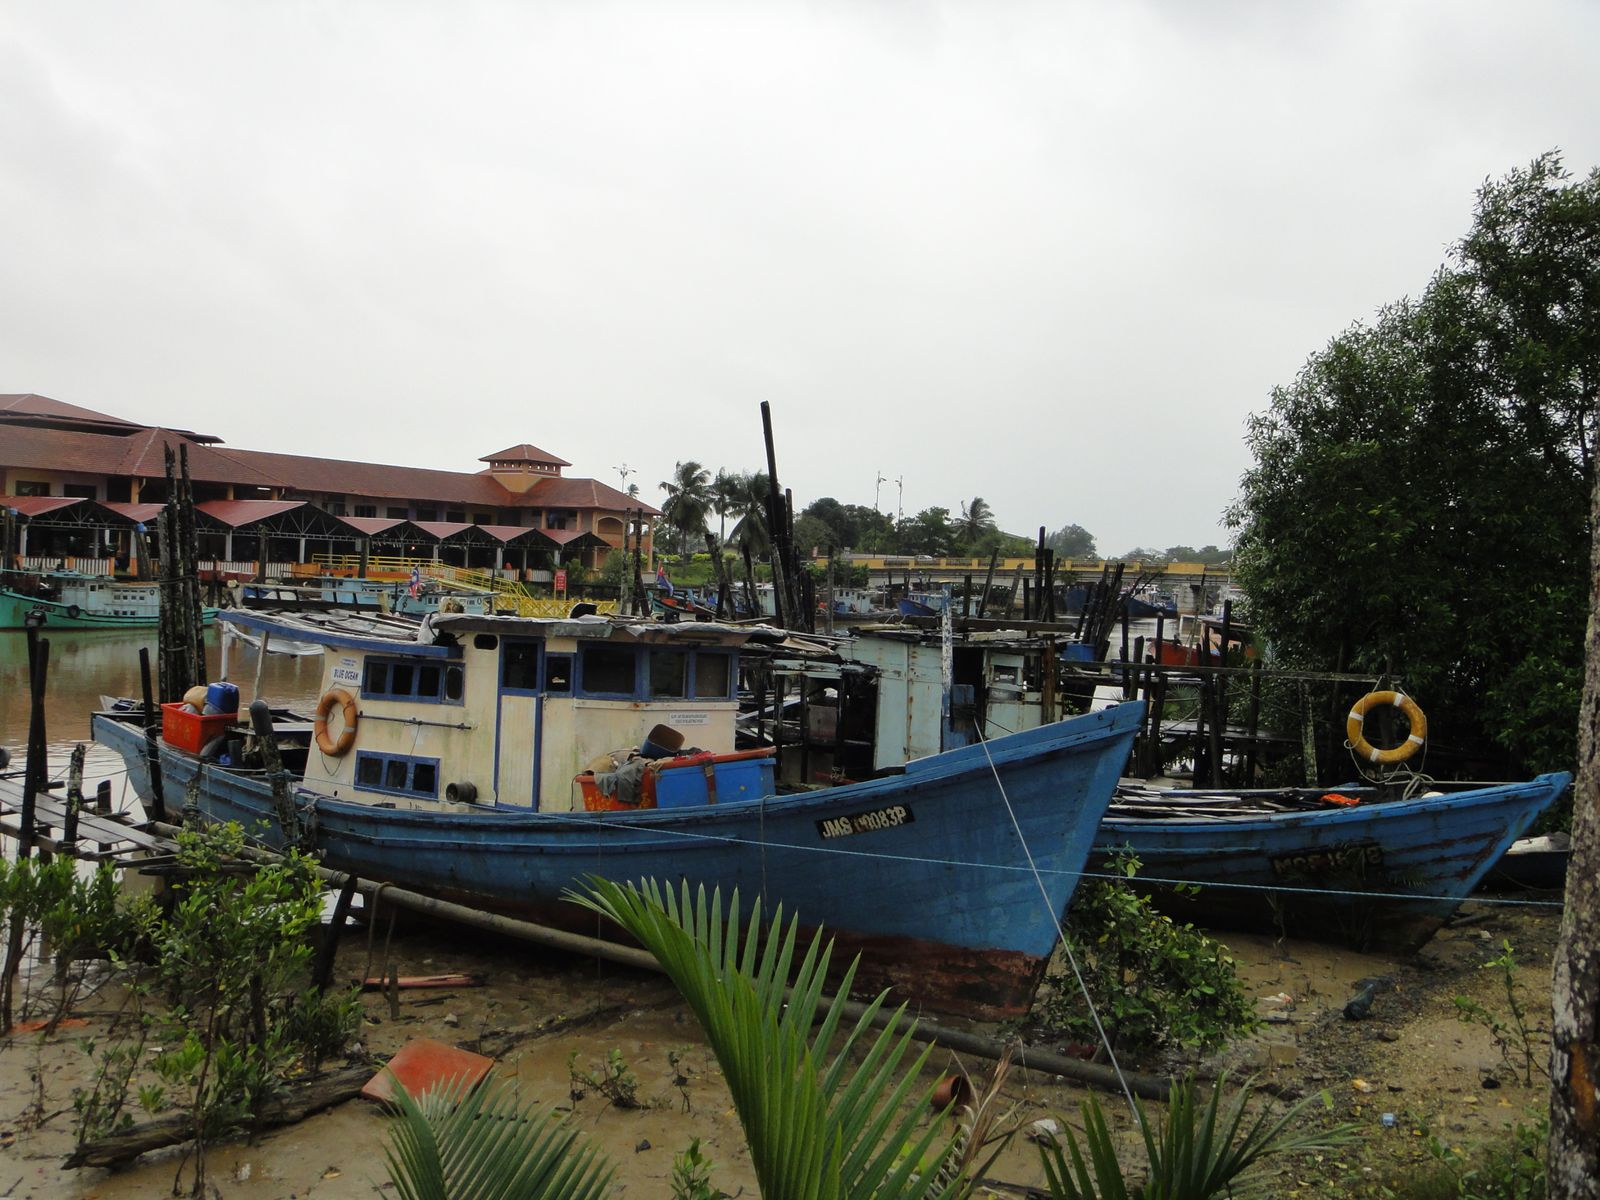 Picture from mersing (close to Tioman island)